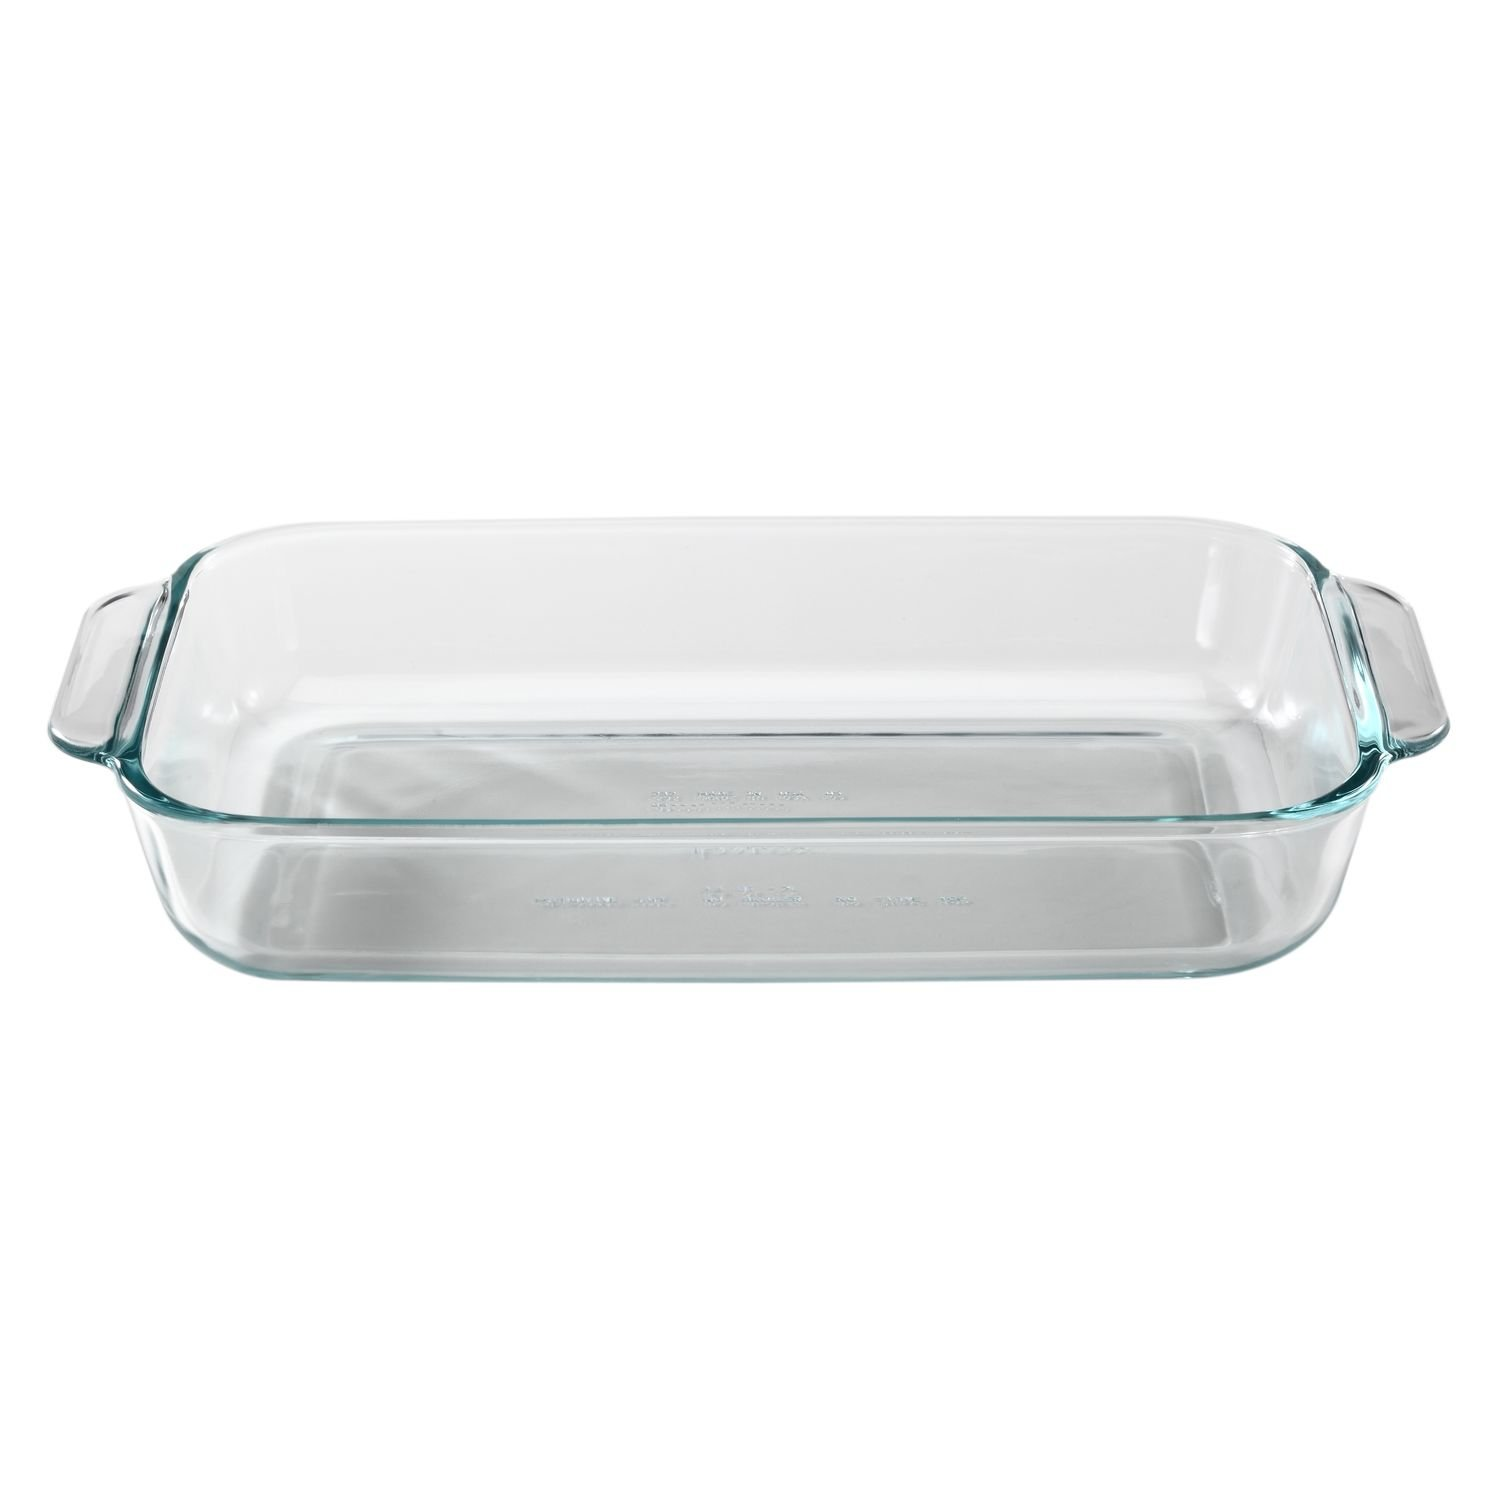 Pyrex SYNCHKG055786 Basics 2 Quart Glass Oblong Baking Dish, Clear 11.1 in. x 7.1 in. x 1.7